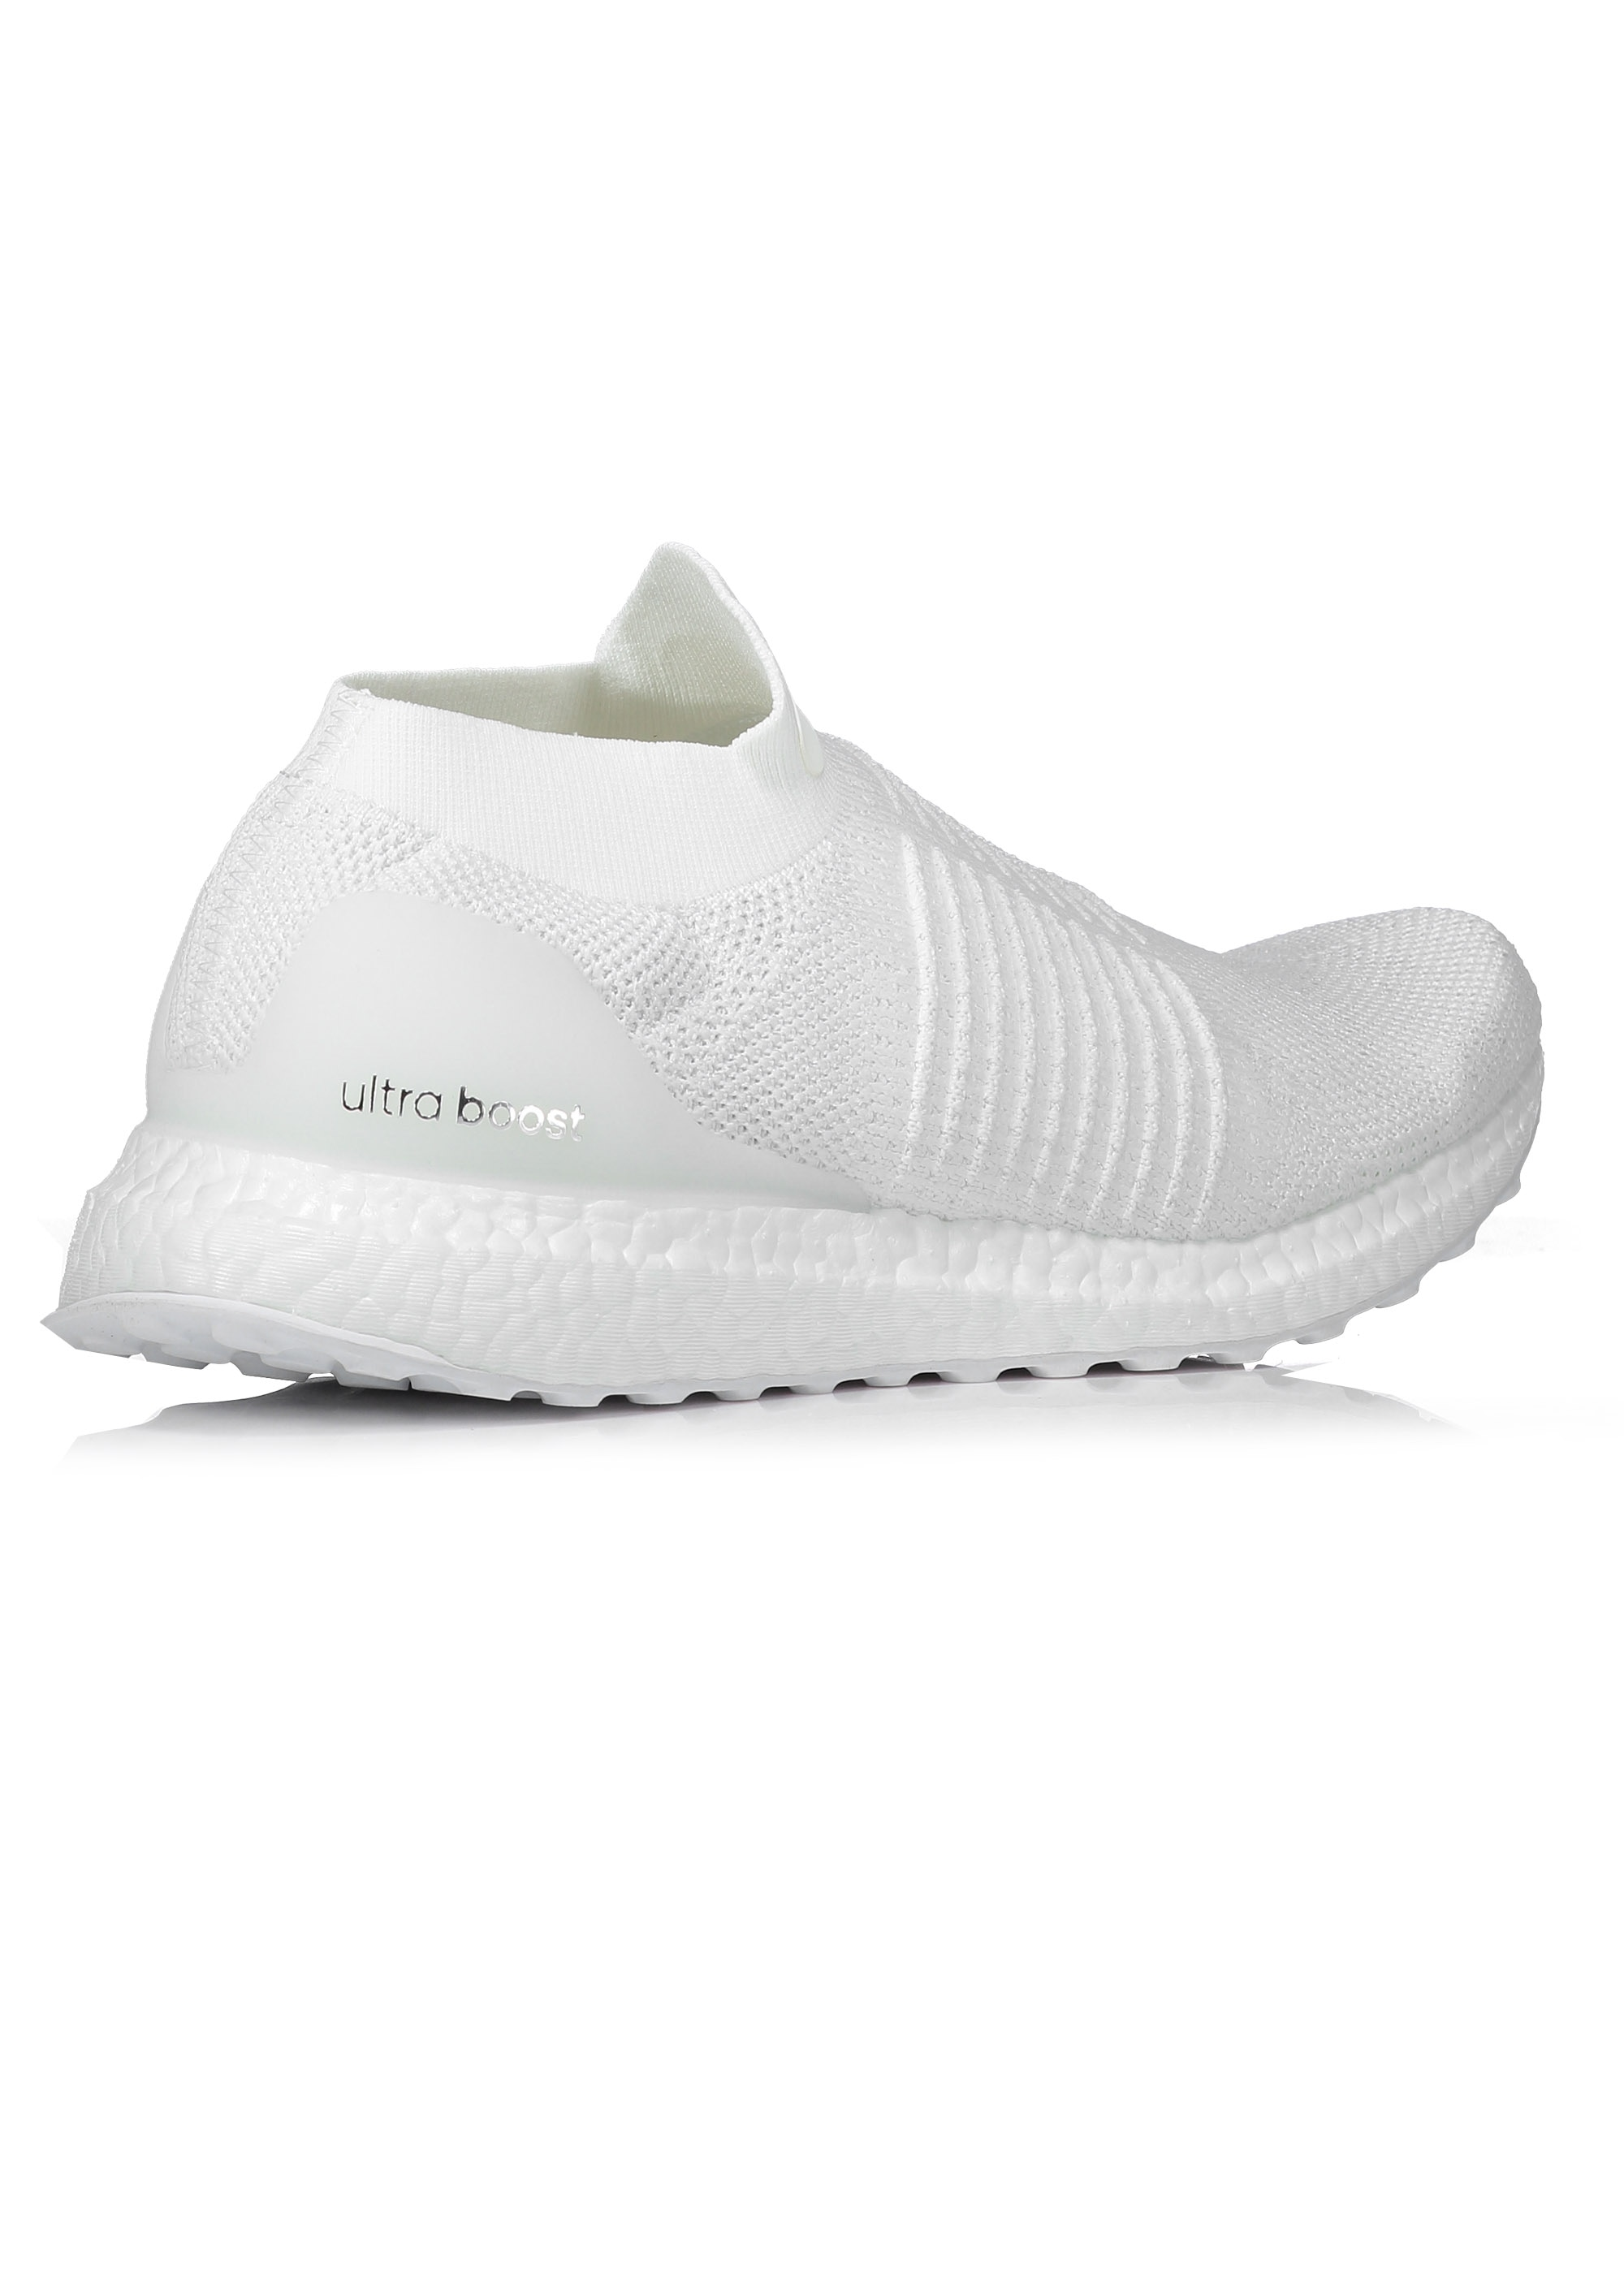 744f90acd27ca adidas Originals Footwear Ultraboost Laceless - White - Triads Mens ...